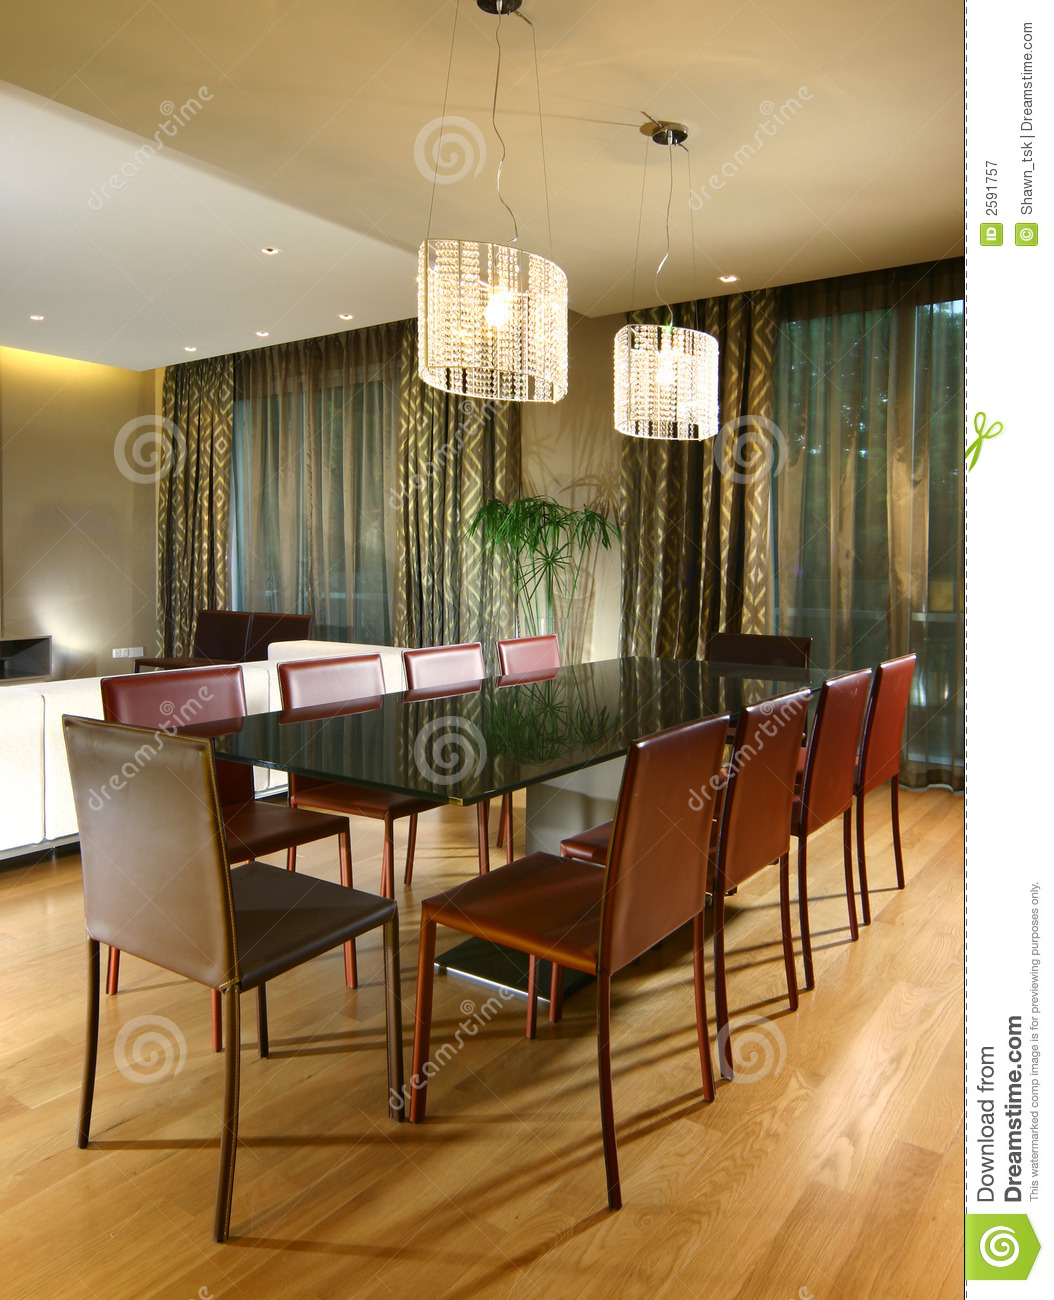 Interior design dining area royalty free stock for Interior design for dining area